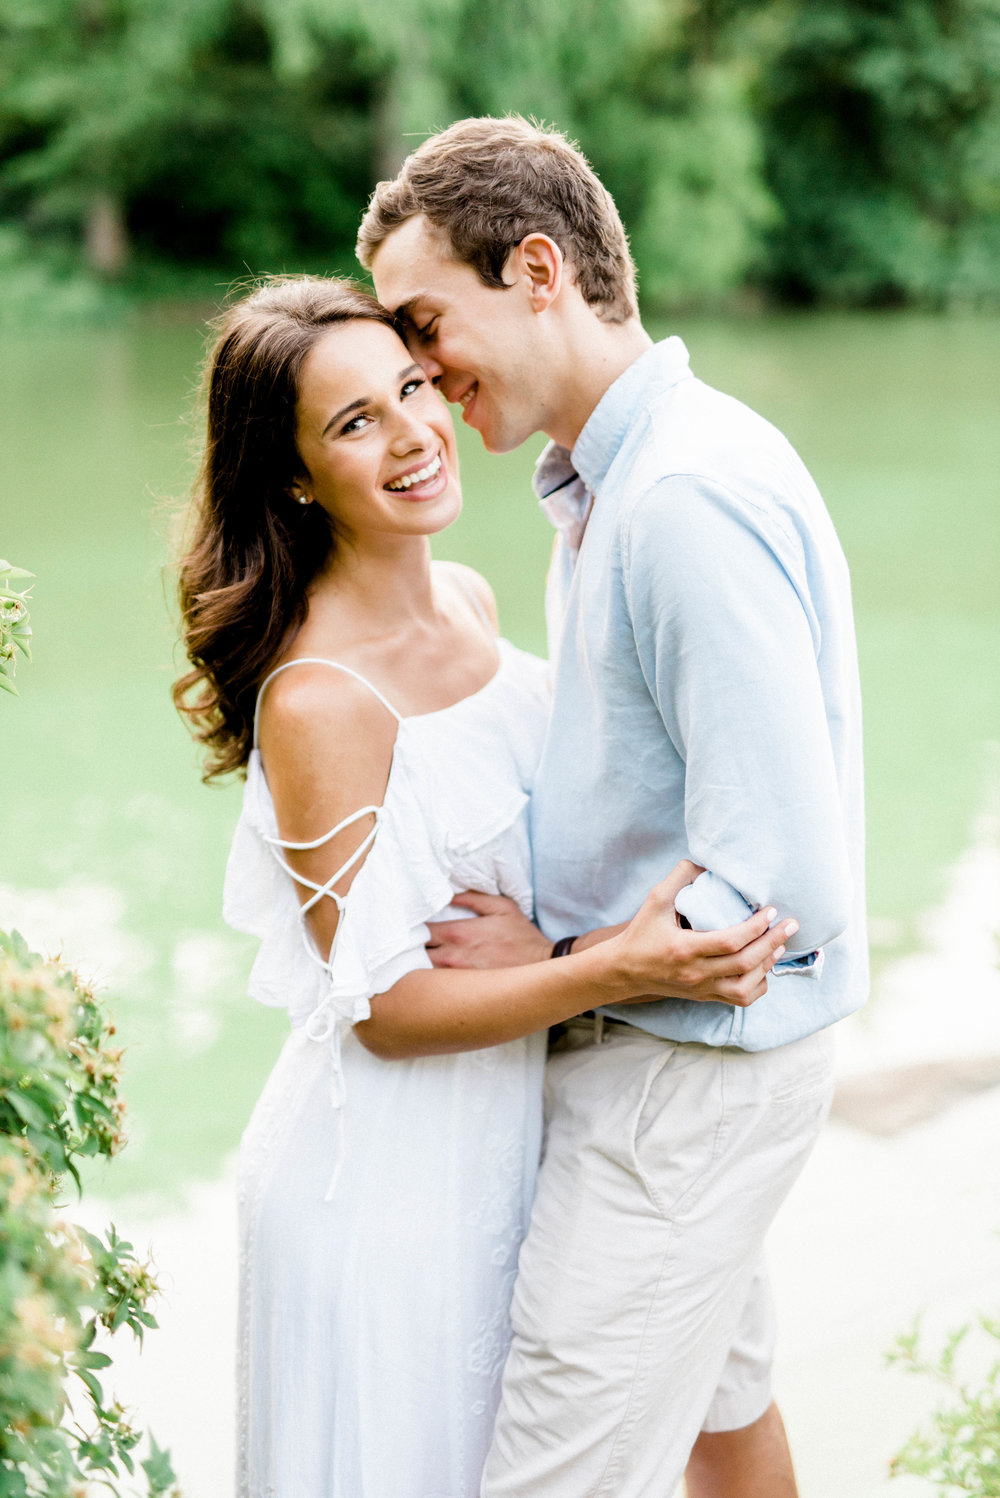 Preppy meets boho in this super fun and sweet Central Park engagement session in New York.